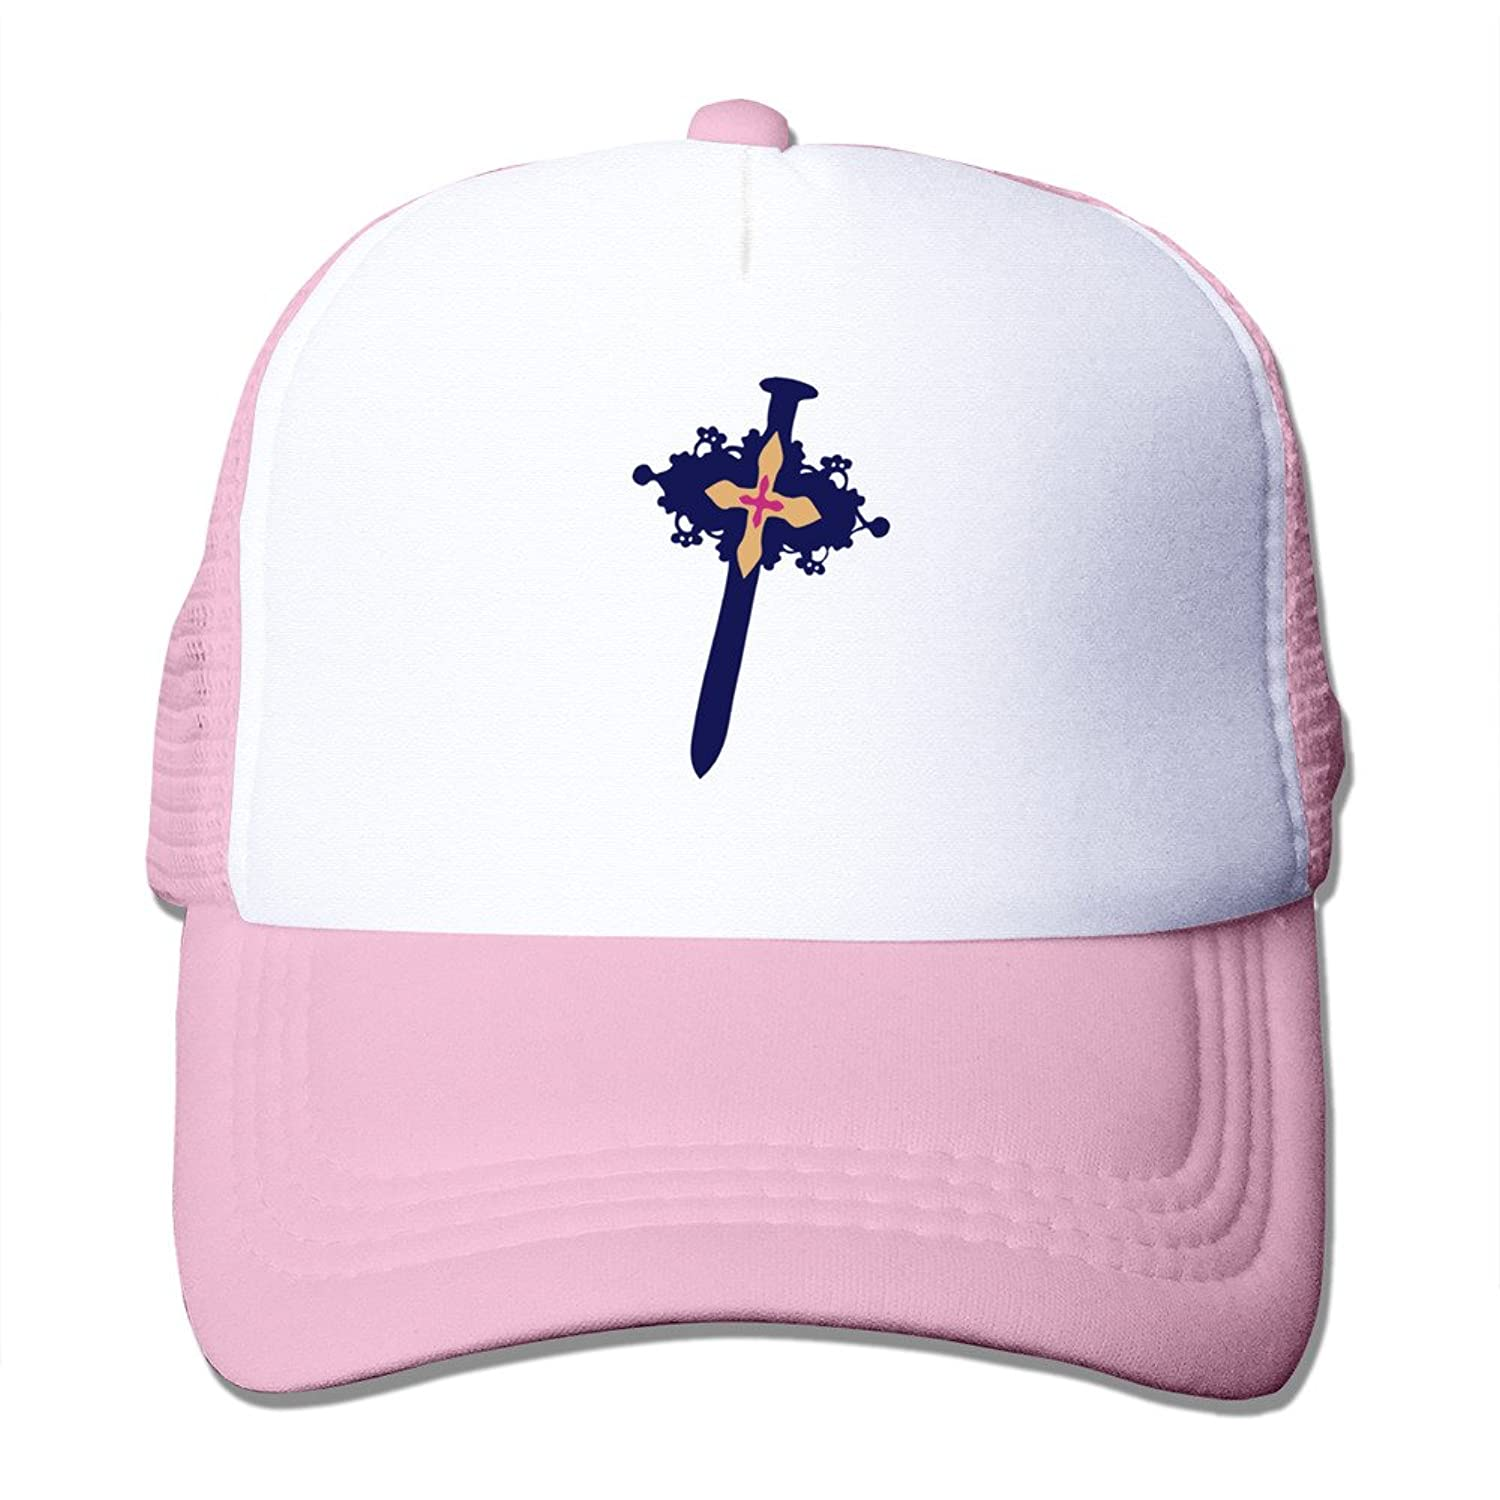 Bro-Custom Excalibur Sword Graphic Unisex Hat Cap One Size Fit All Black